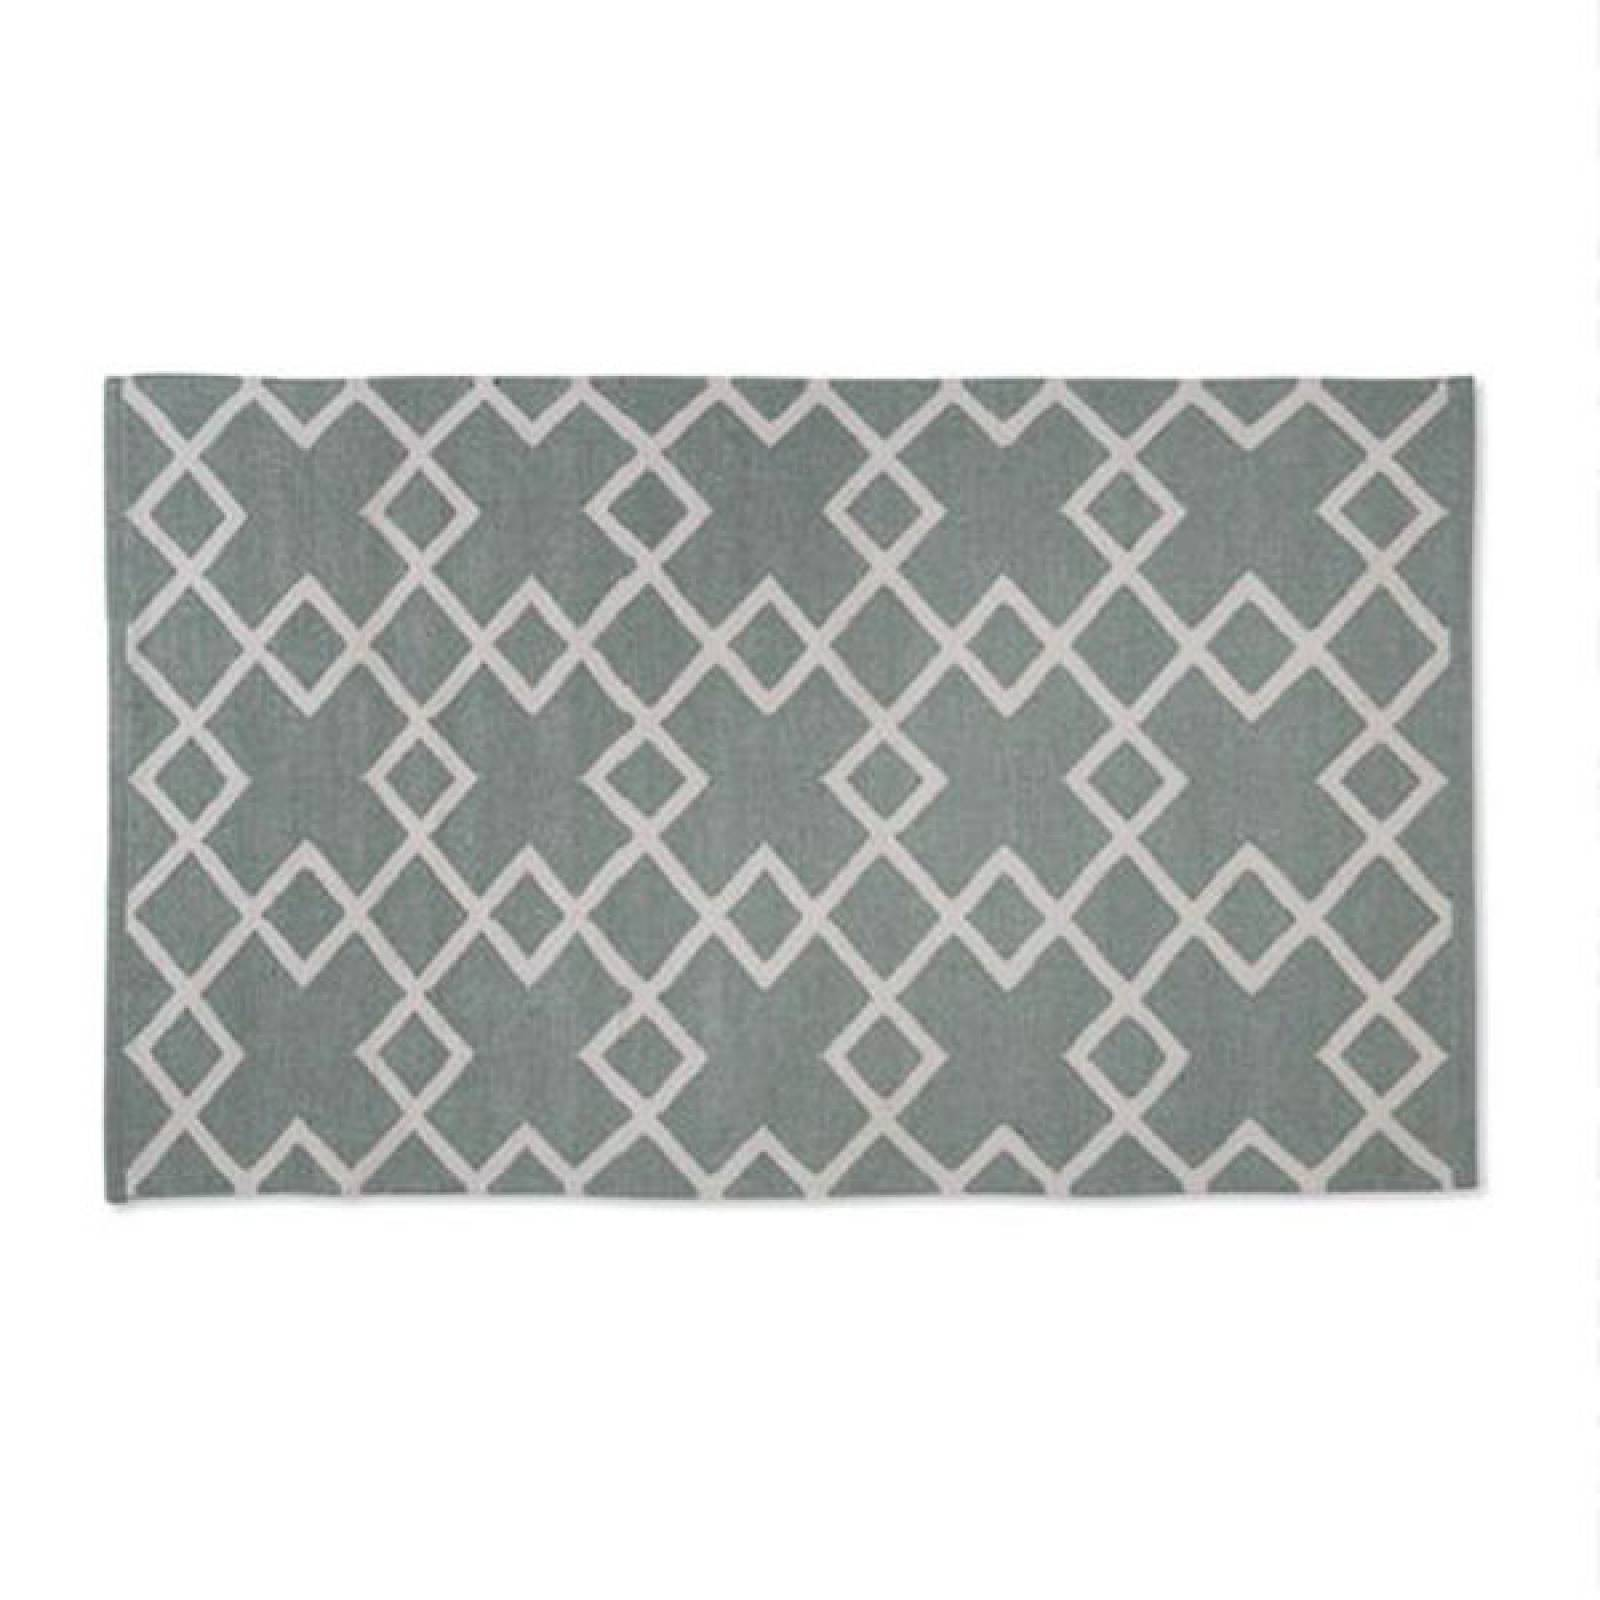 Dove Grey JUNO 180x120cm Recycled Bottle Rug thumbnails